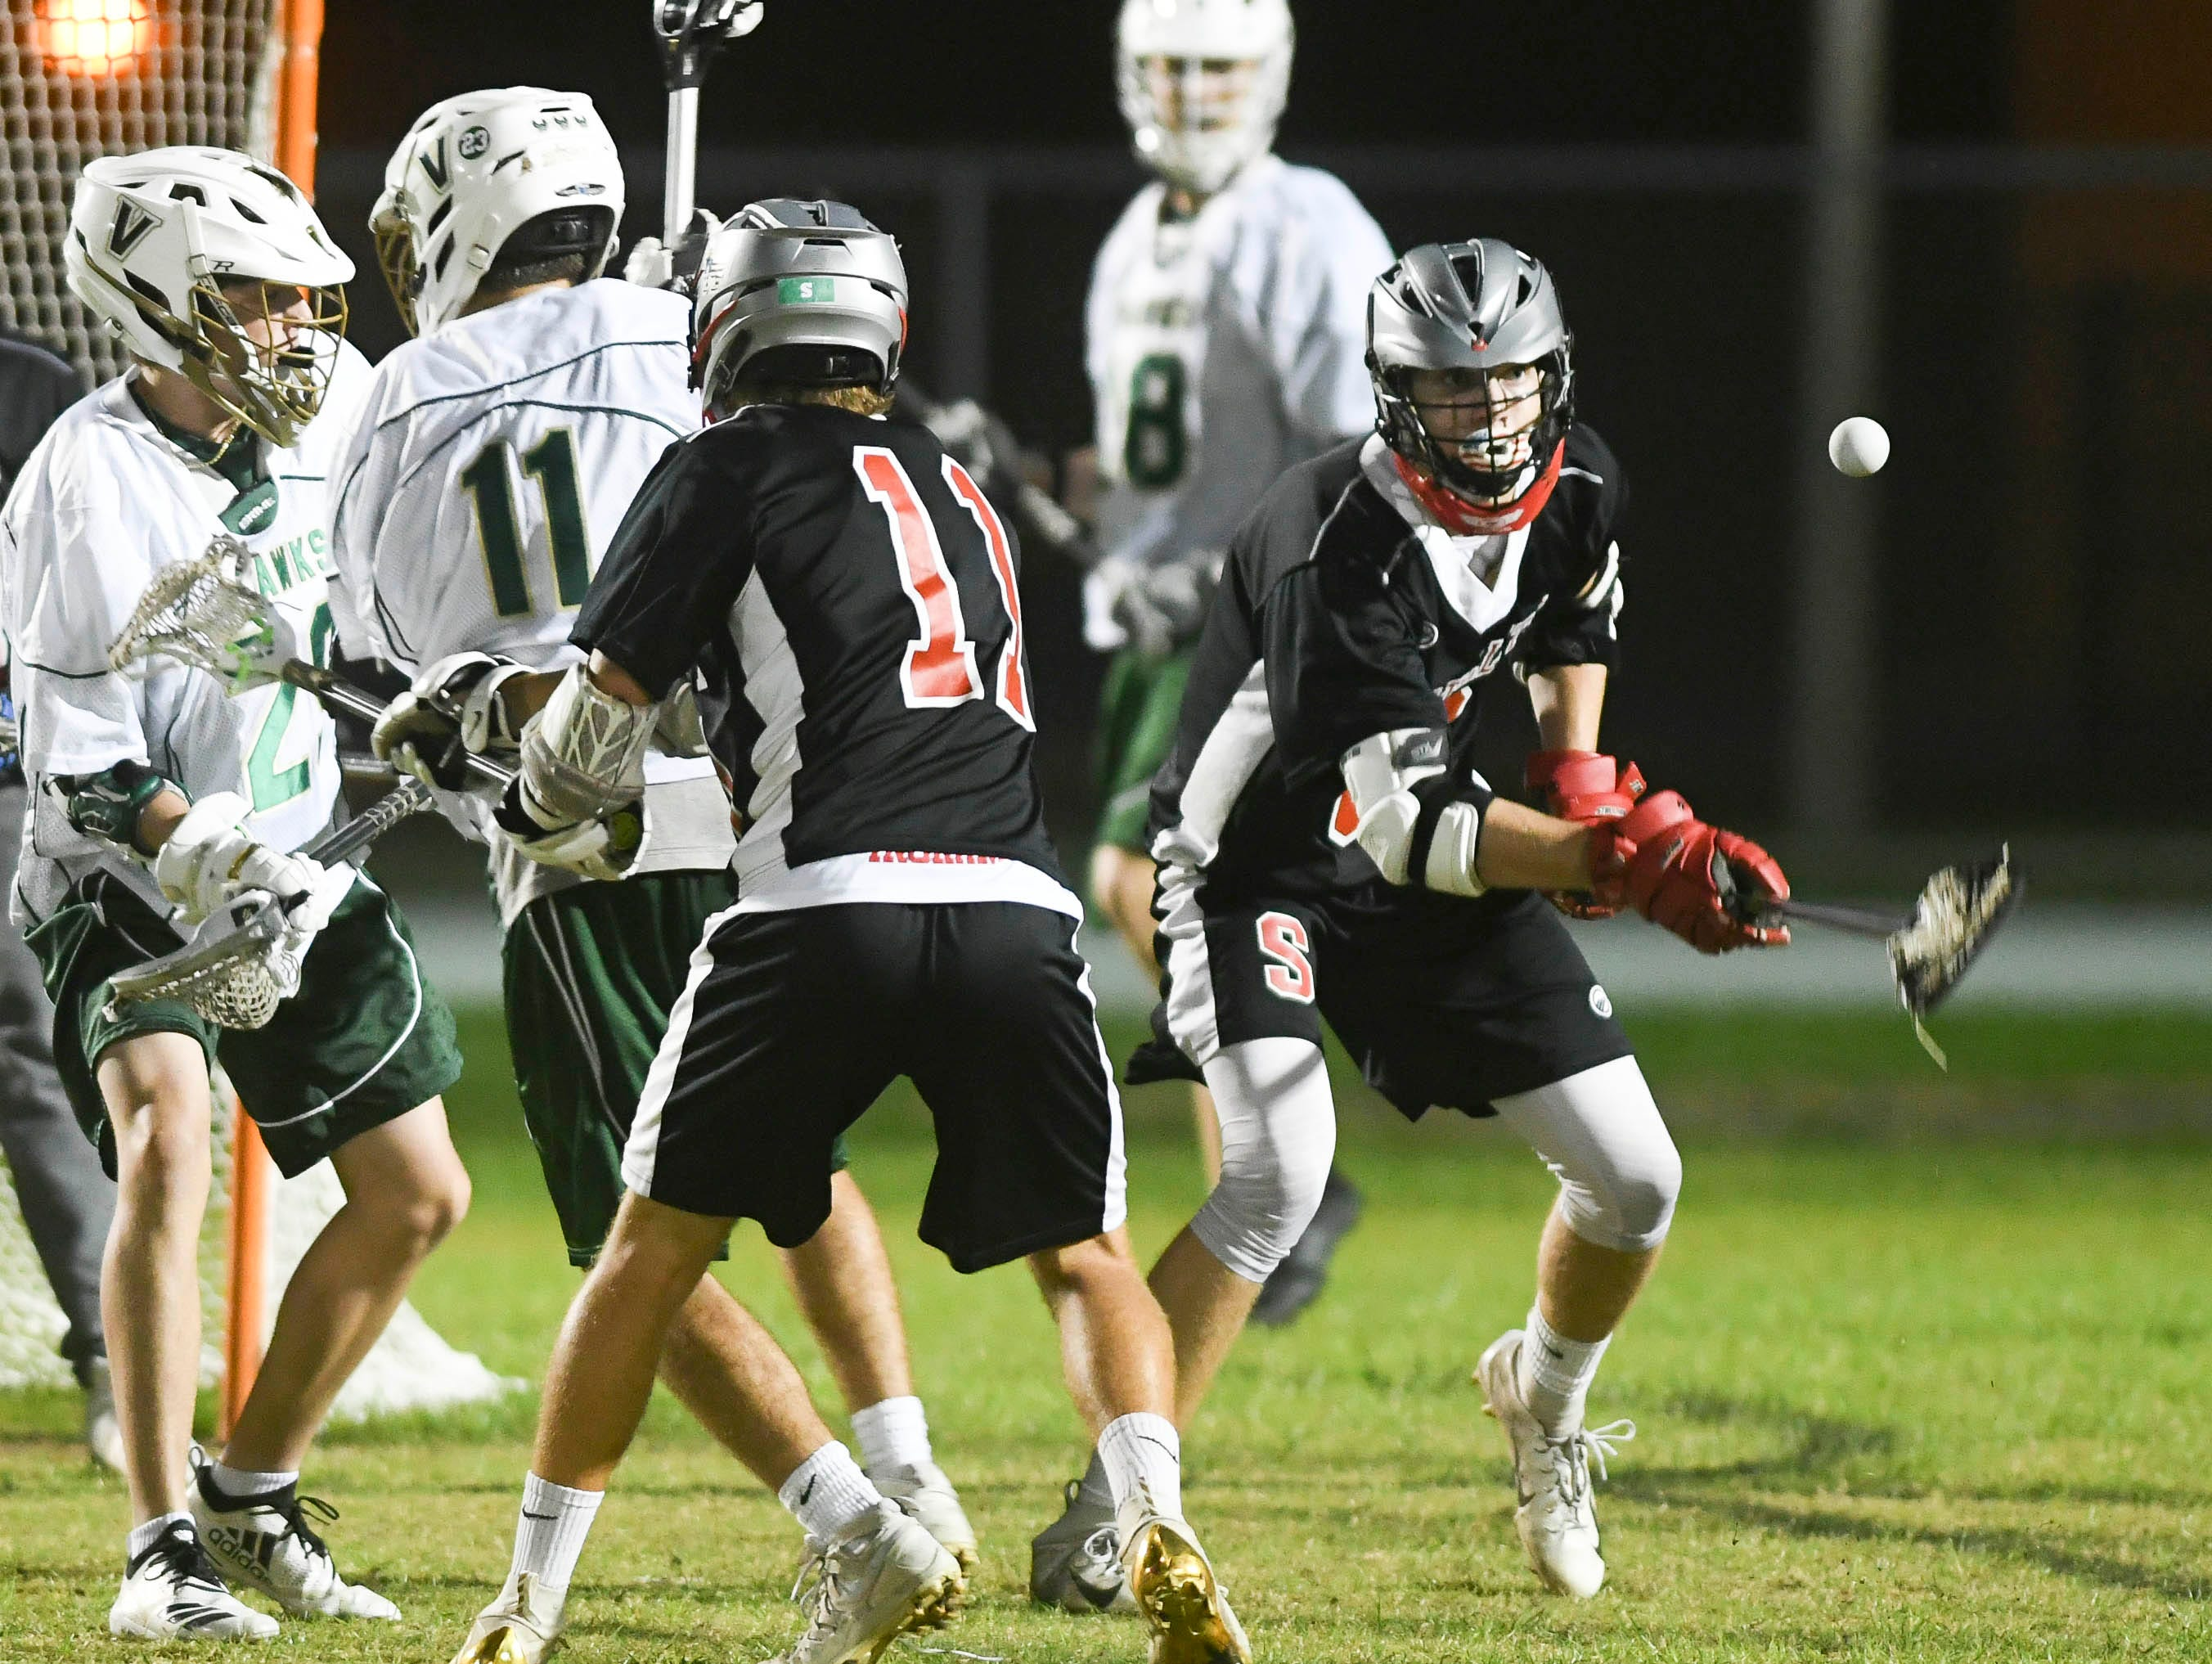 Satellite and Viera players chase a loose ball during Tuesday's game in Viera